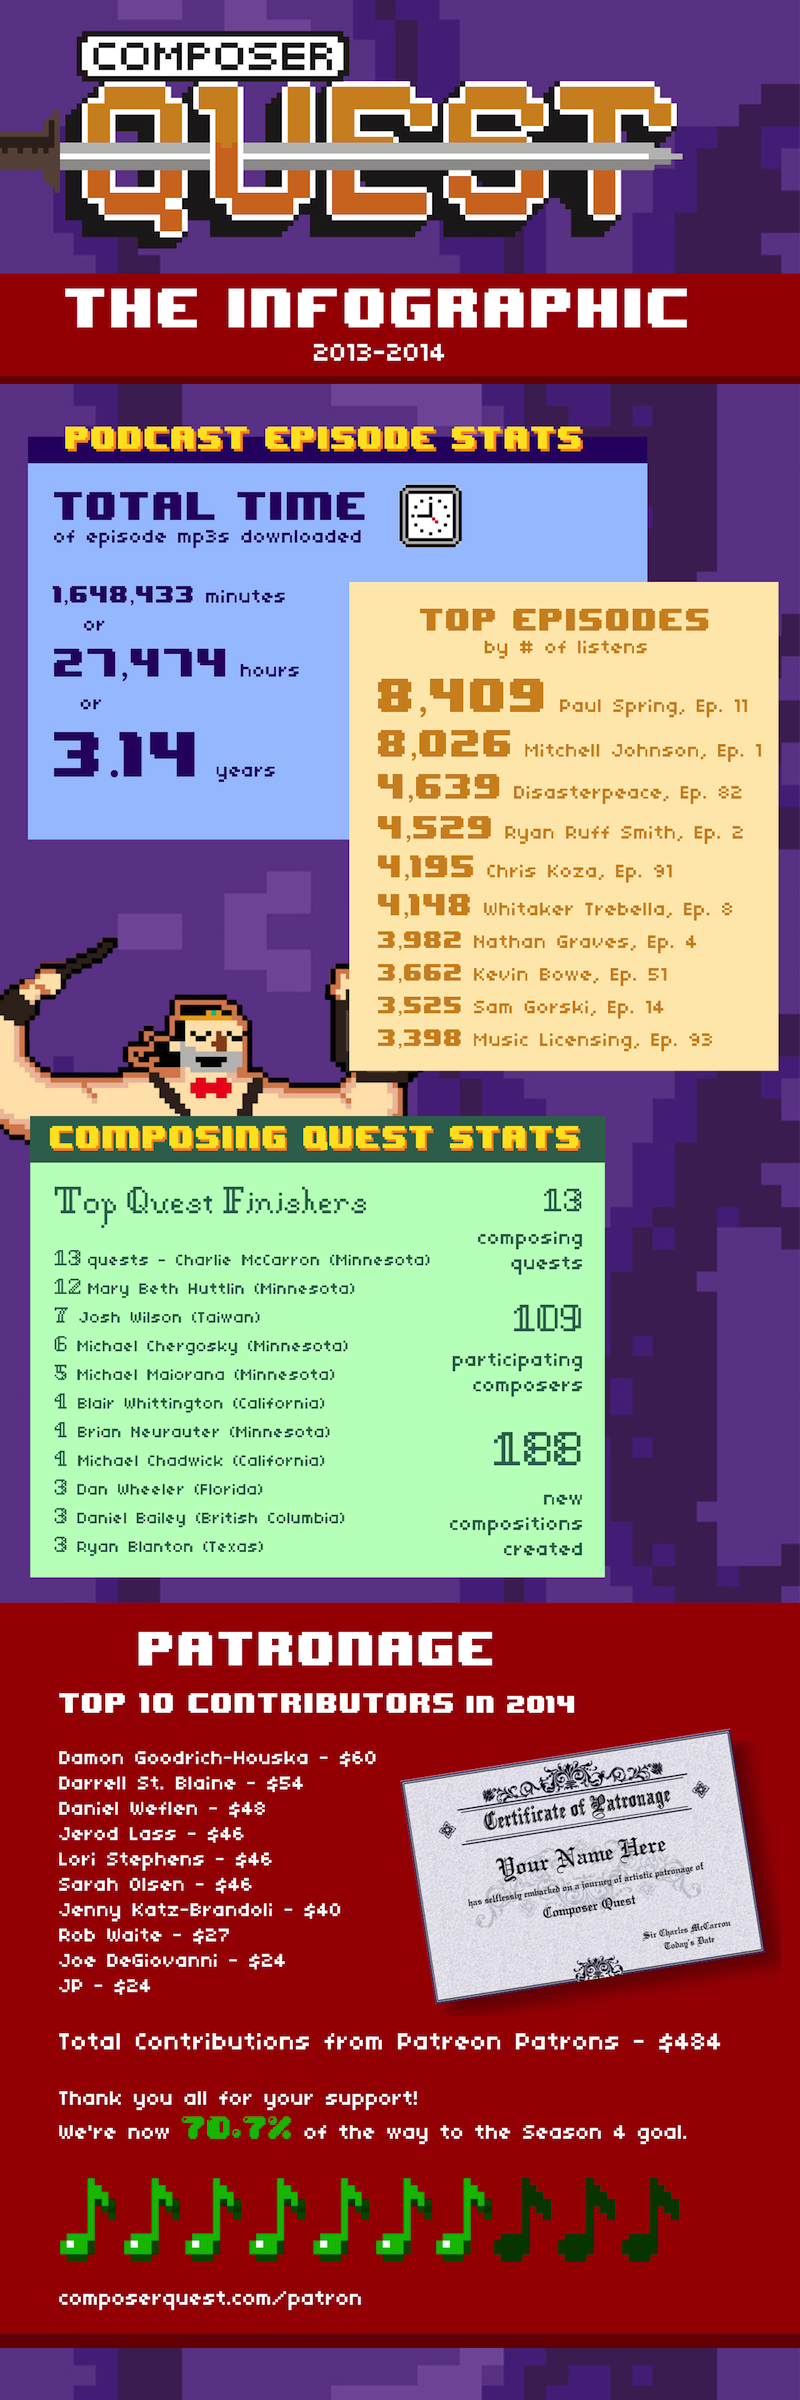 Composer Quest Infographic 2013-2014